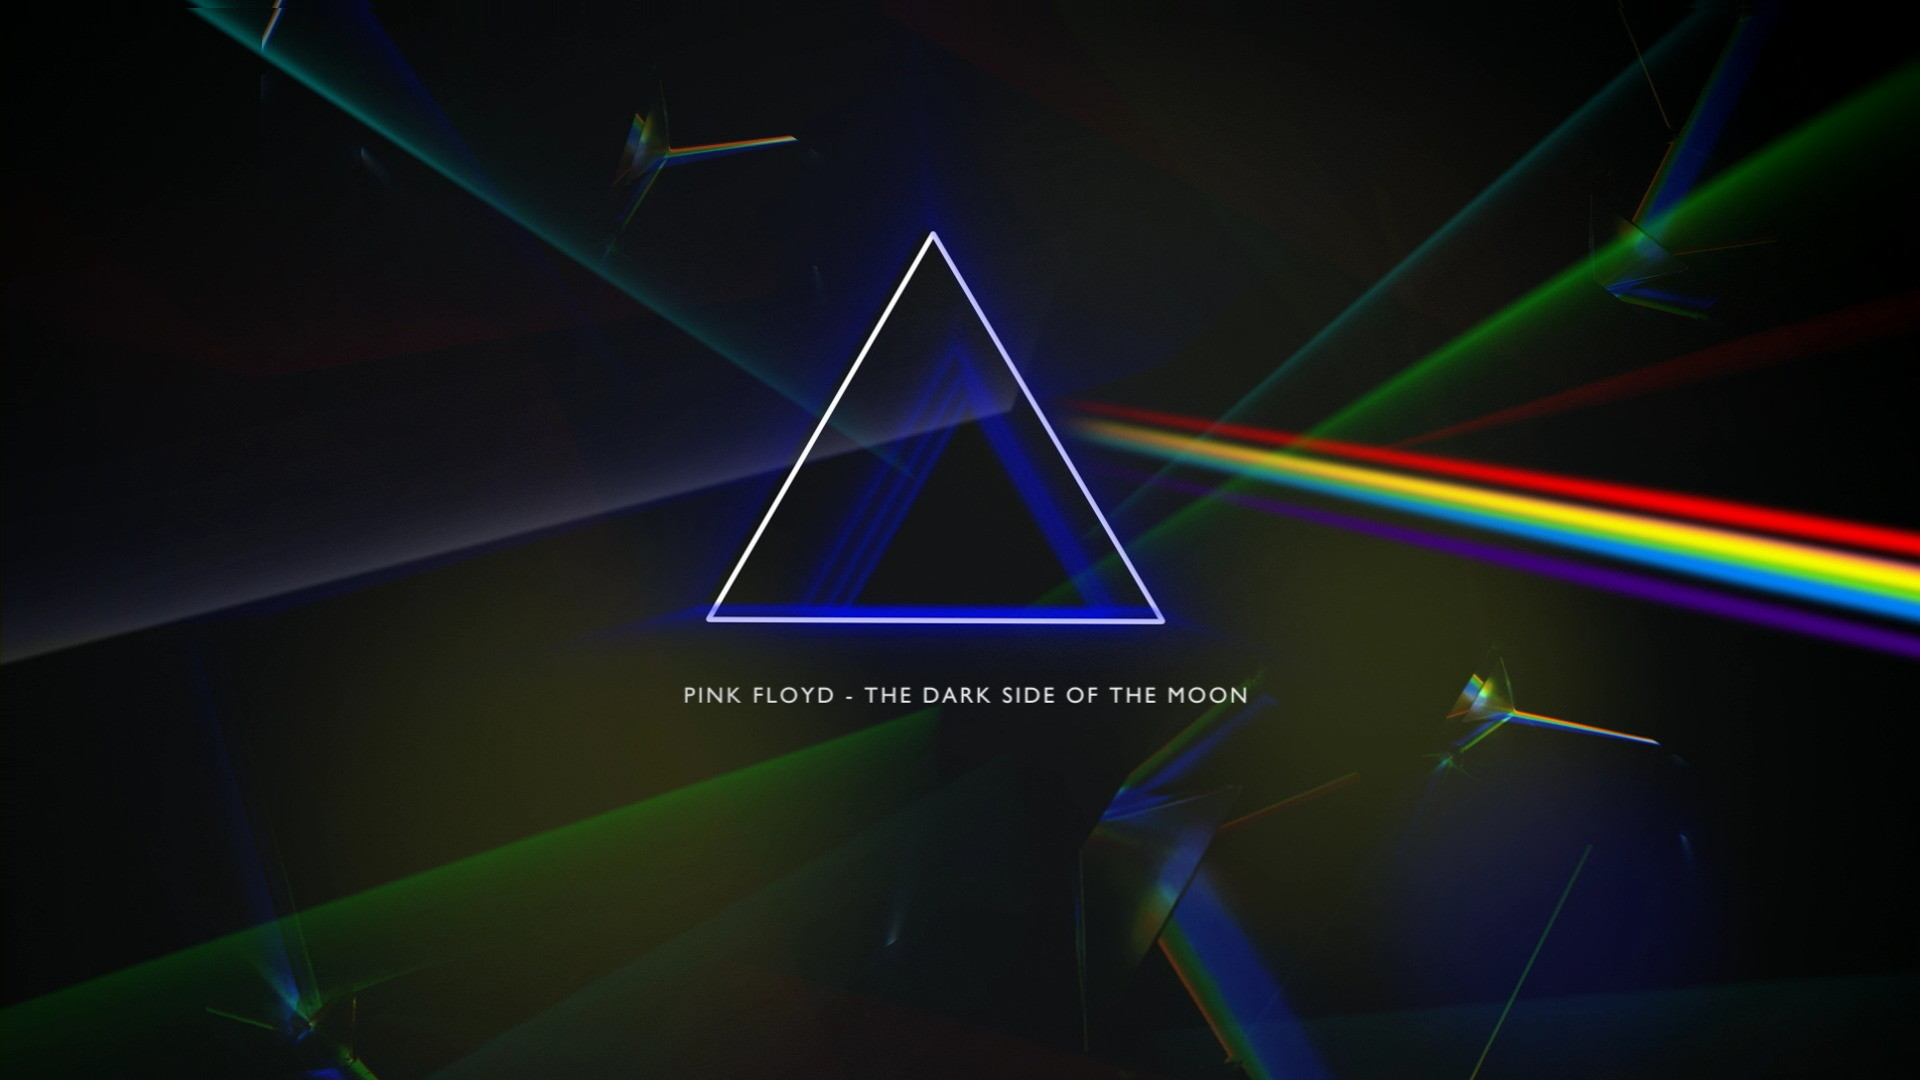 Pink Floyd Wallpapers | Wallpapers, Photo